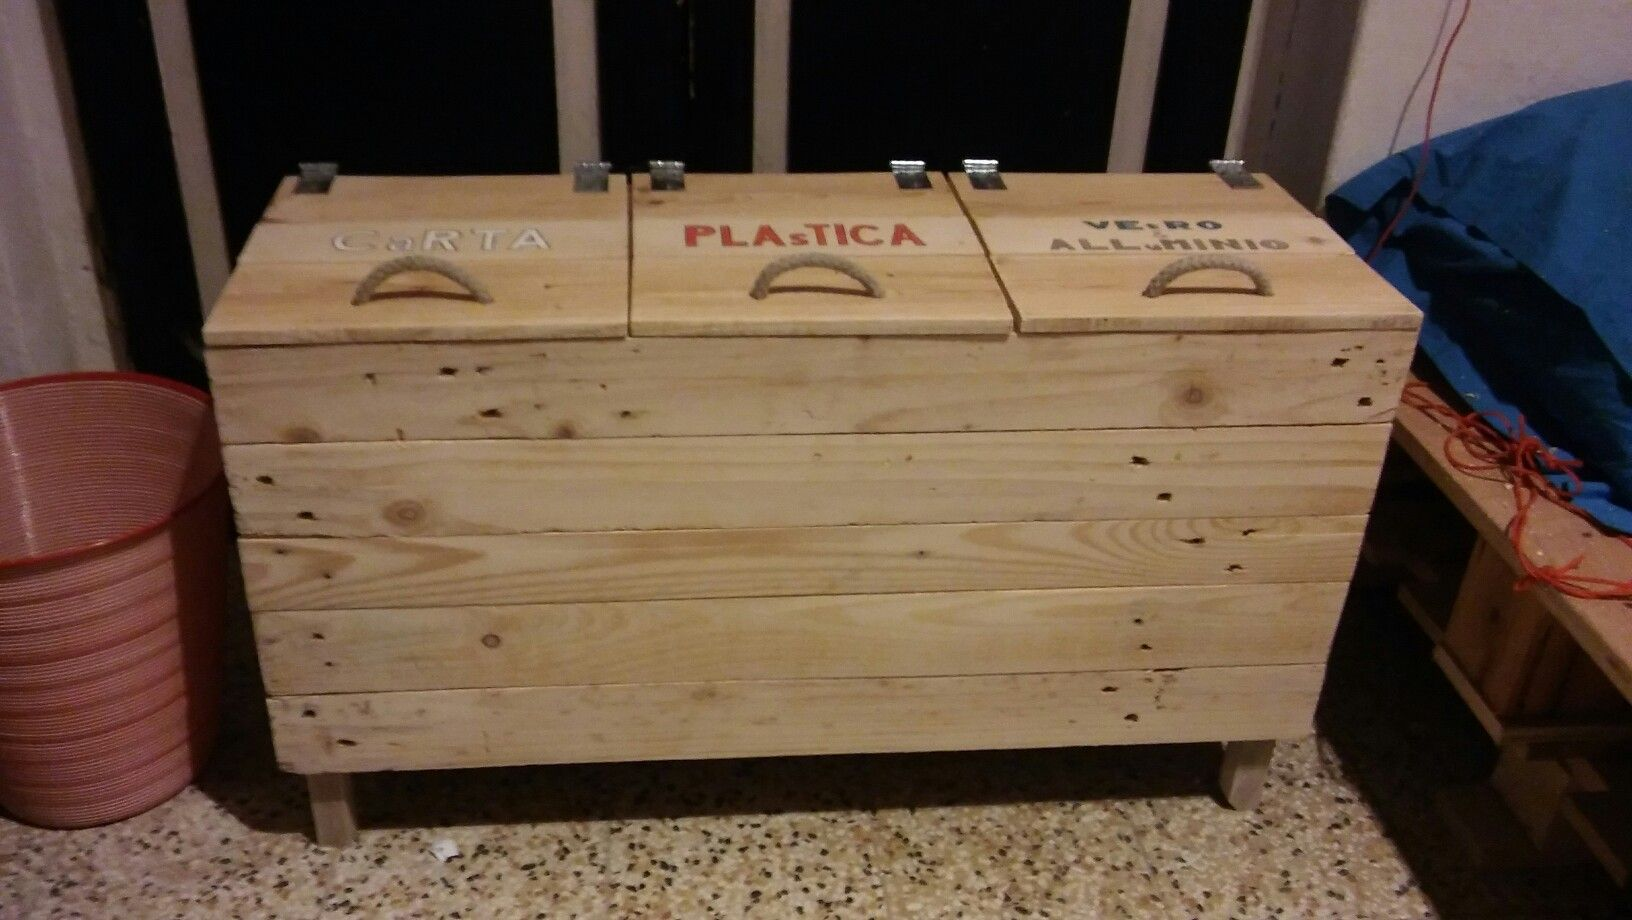 Credenza Per Raccolta Differenziata : Cestino per la raccolta differenziata in legno di pallet the way